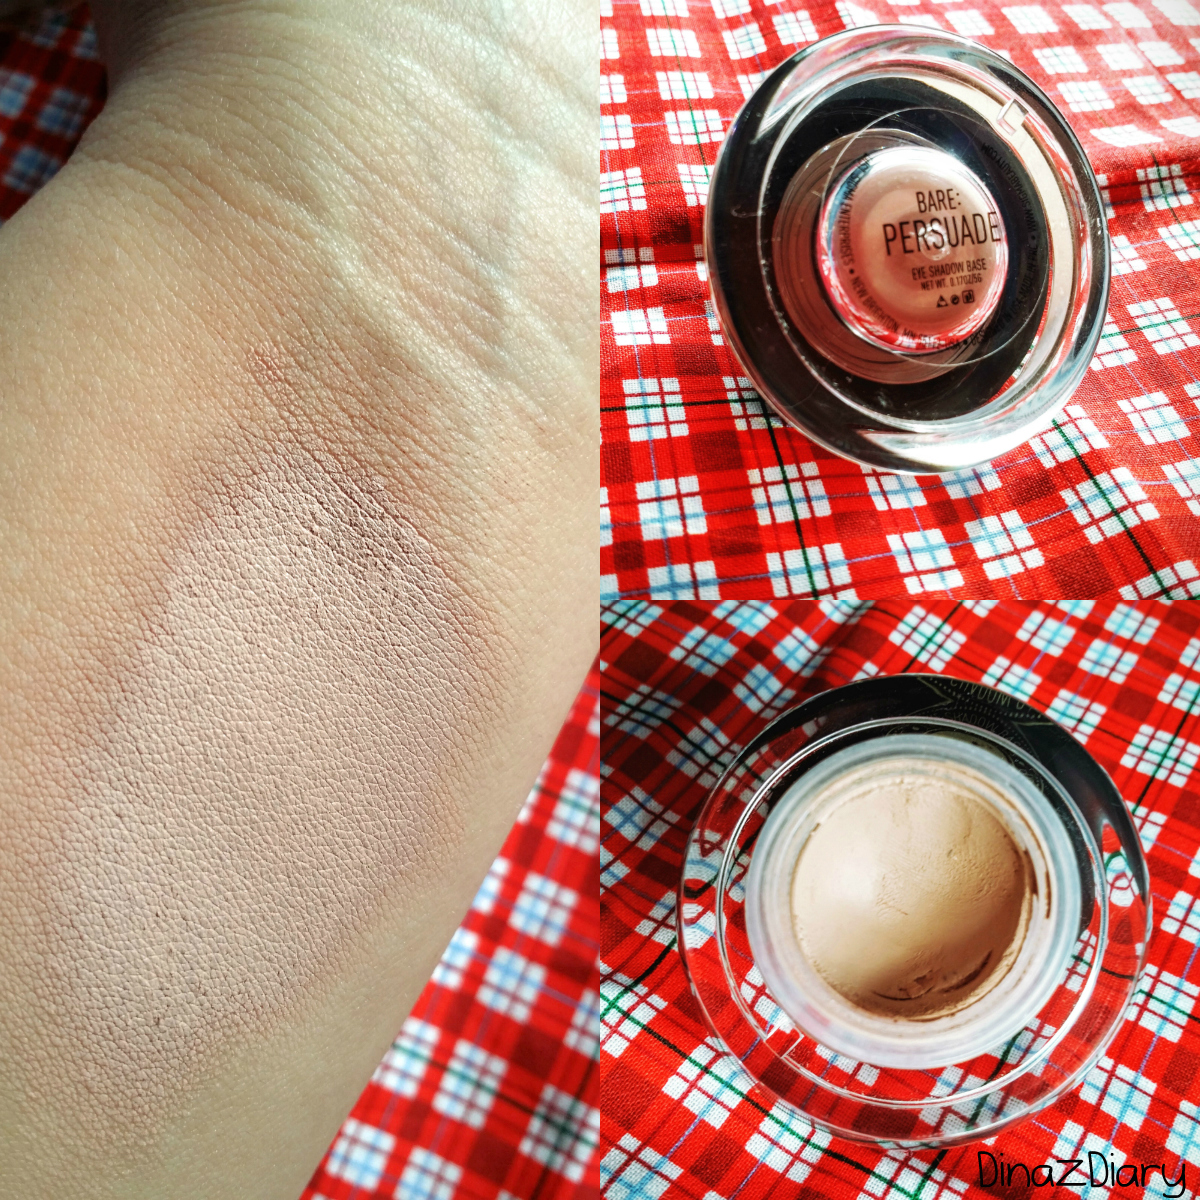 Dinazdiary Sigma Beauty Eyeshadow Base In Persuade Review